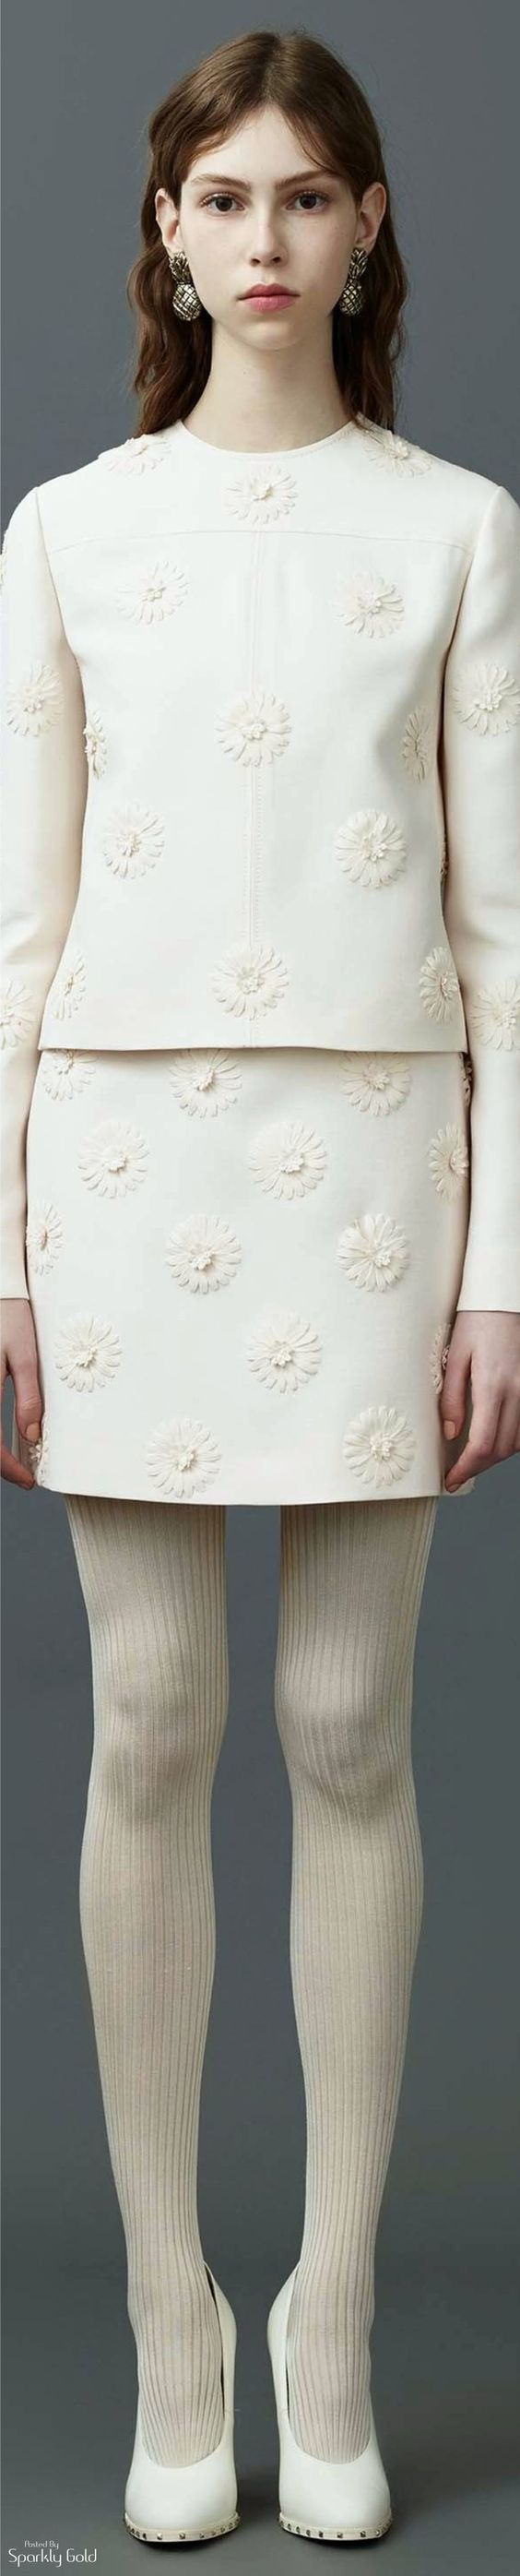 Valentino Resort 2017